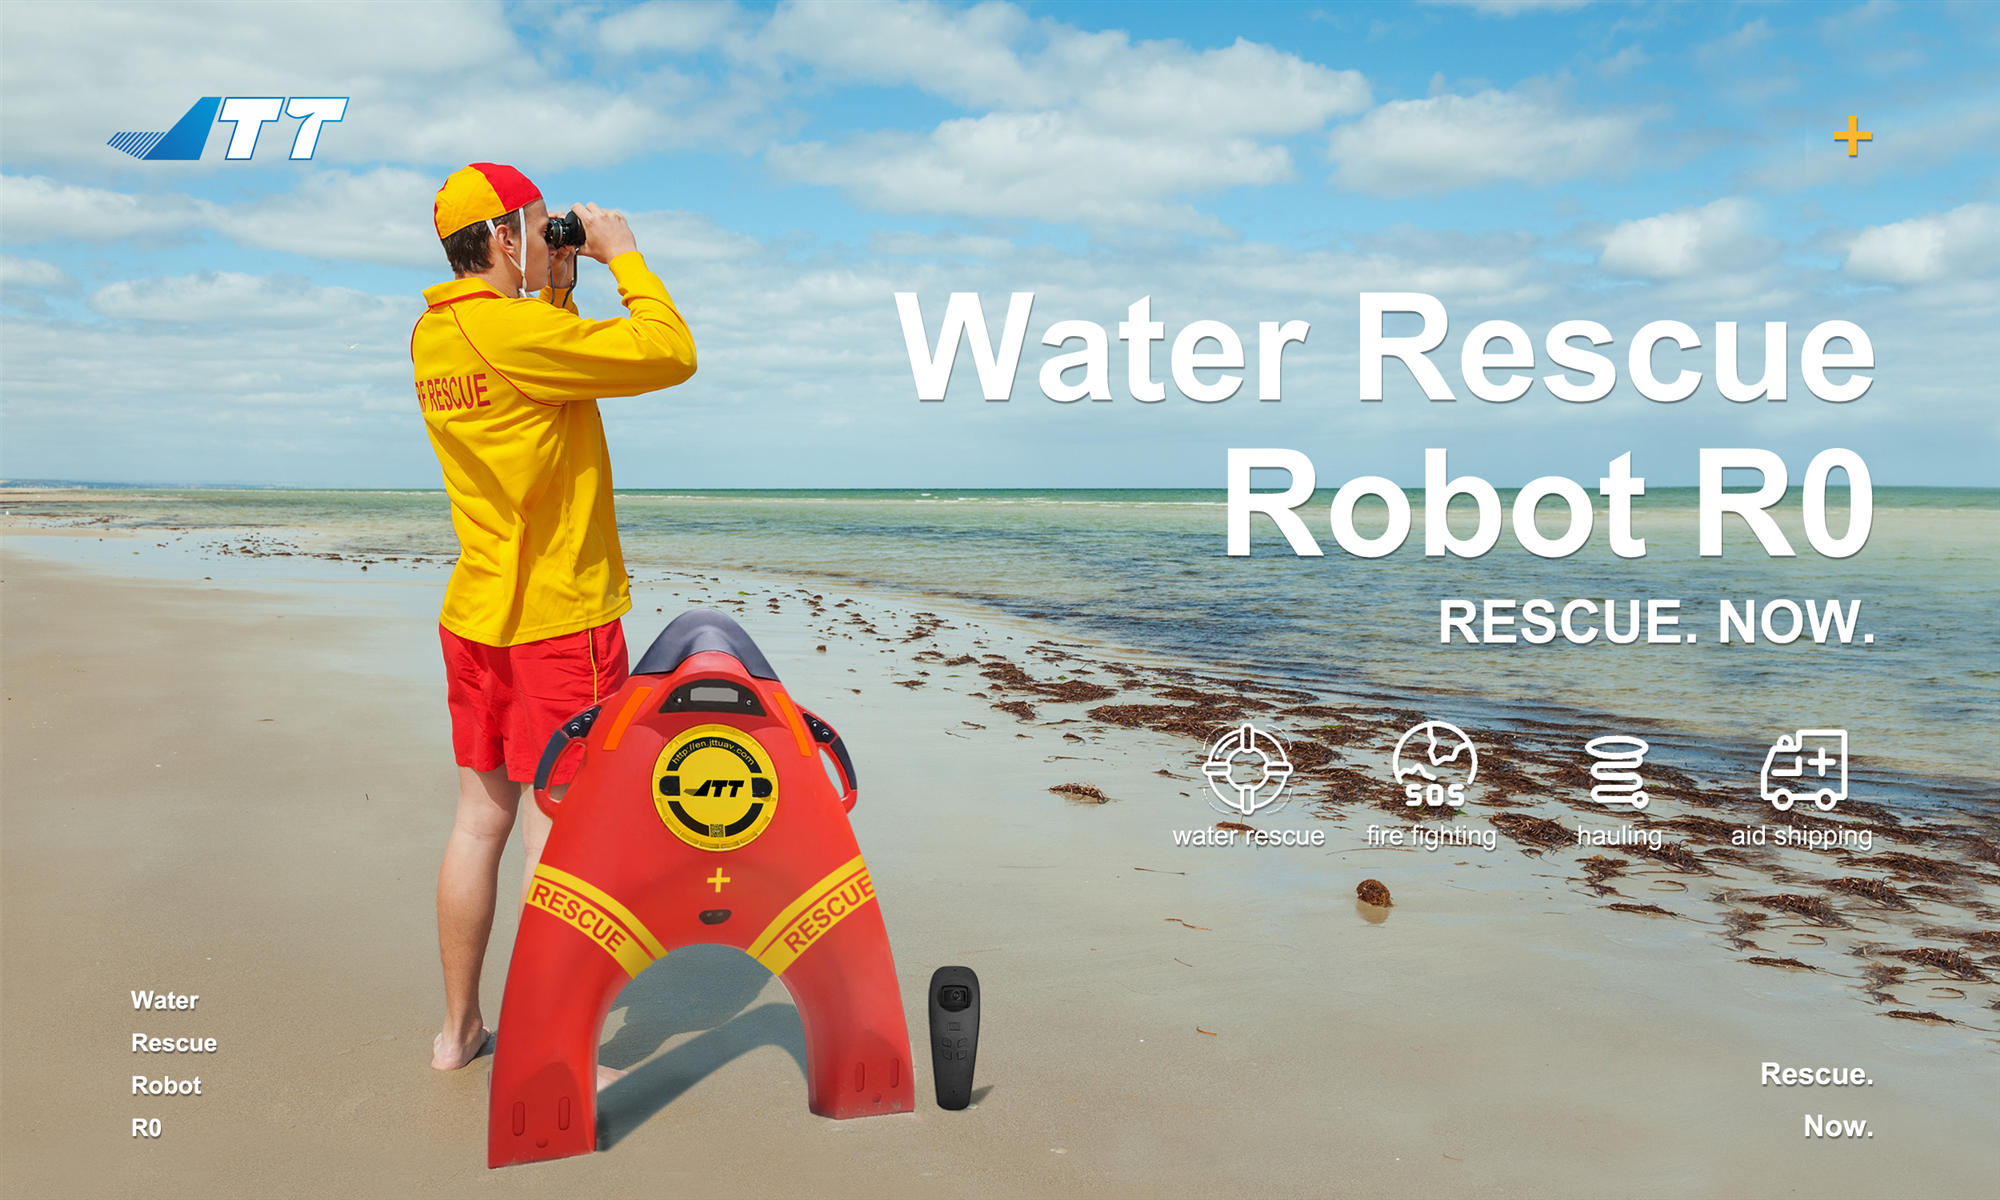 Water rescue robot R0 to meet the needs of Emergency Department in incoming monsoon